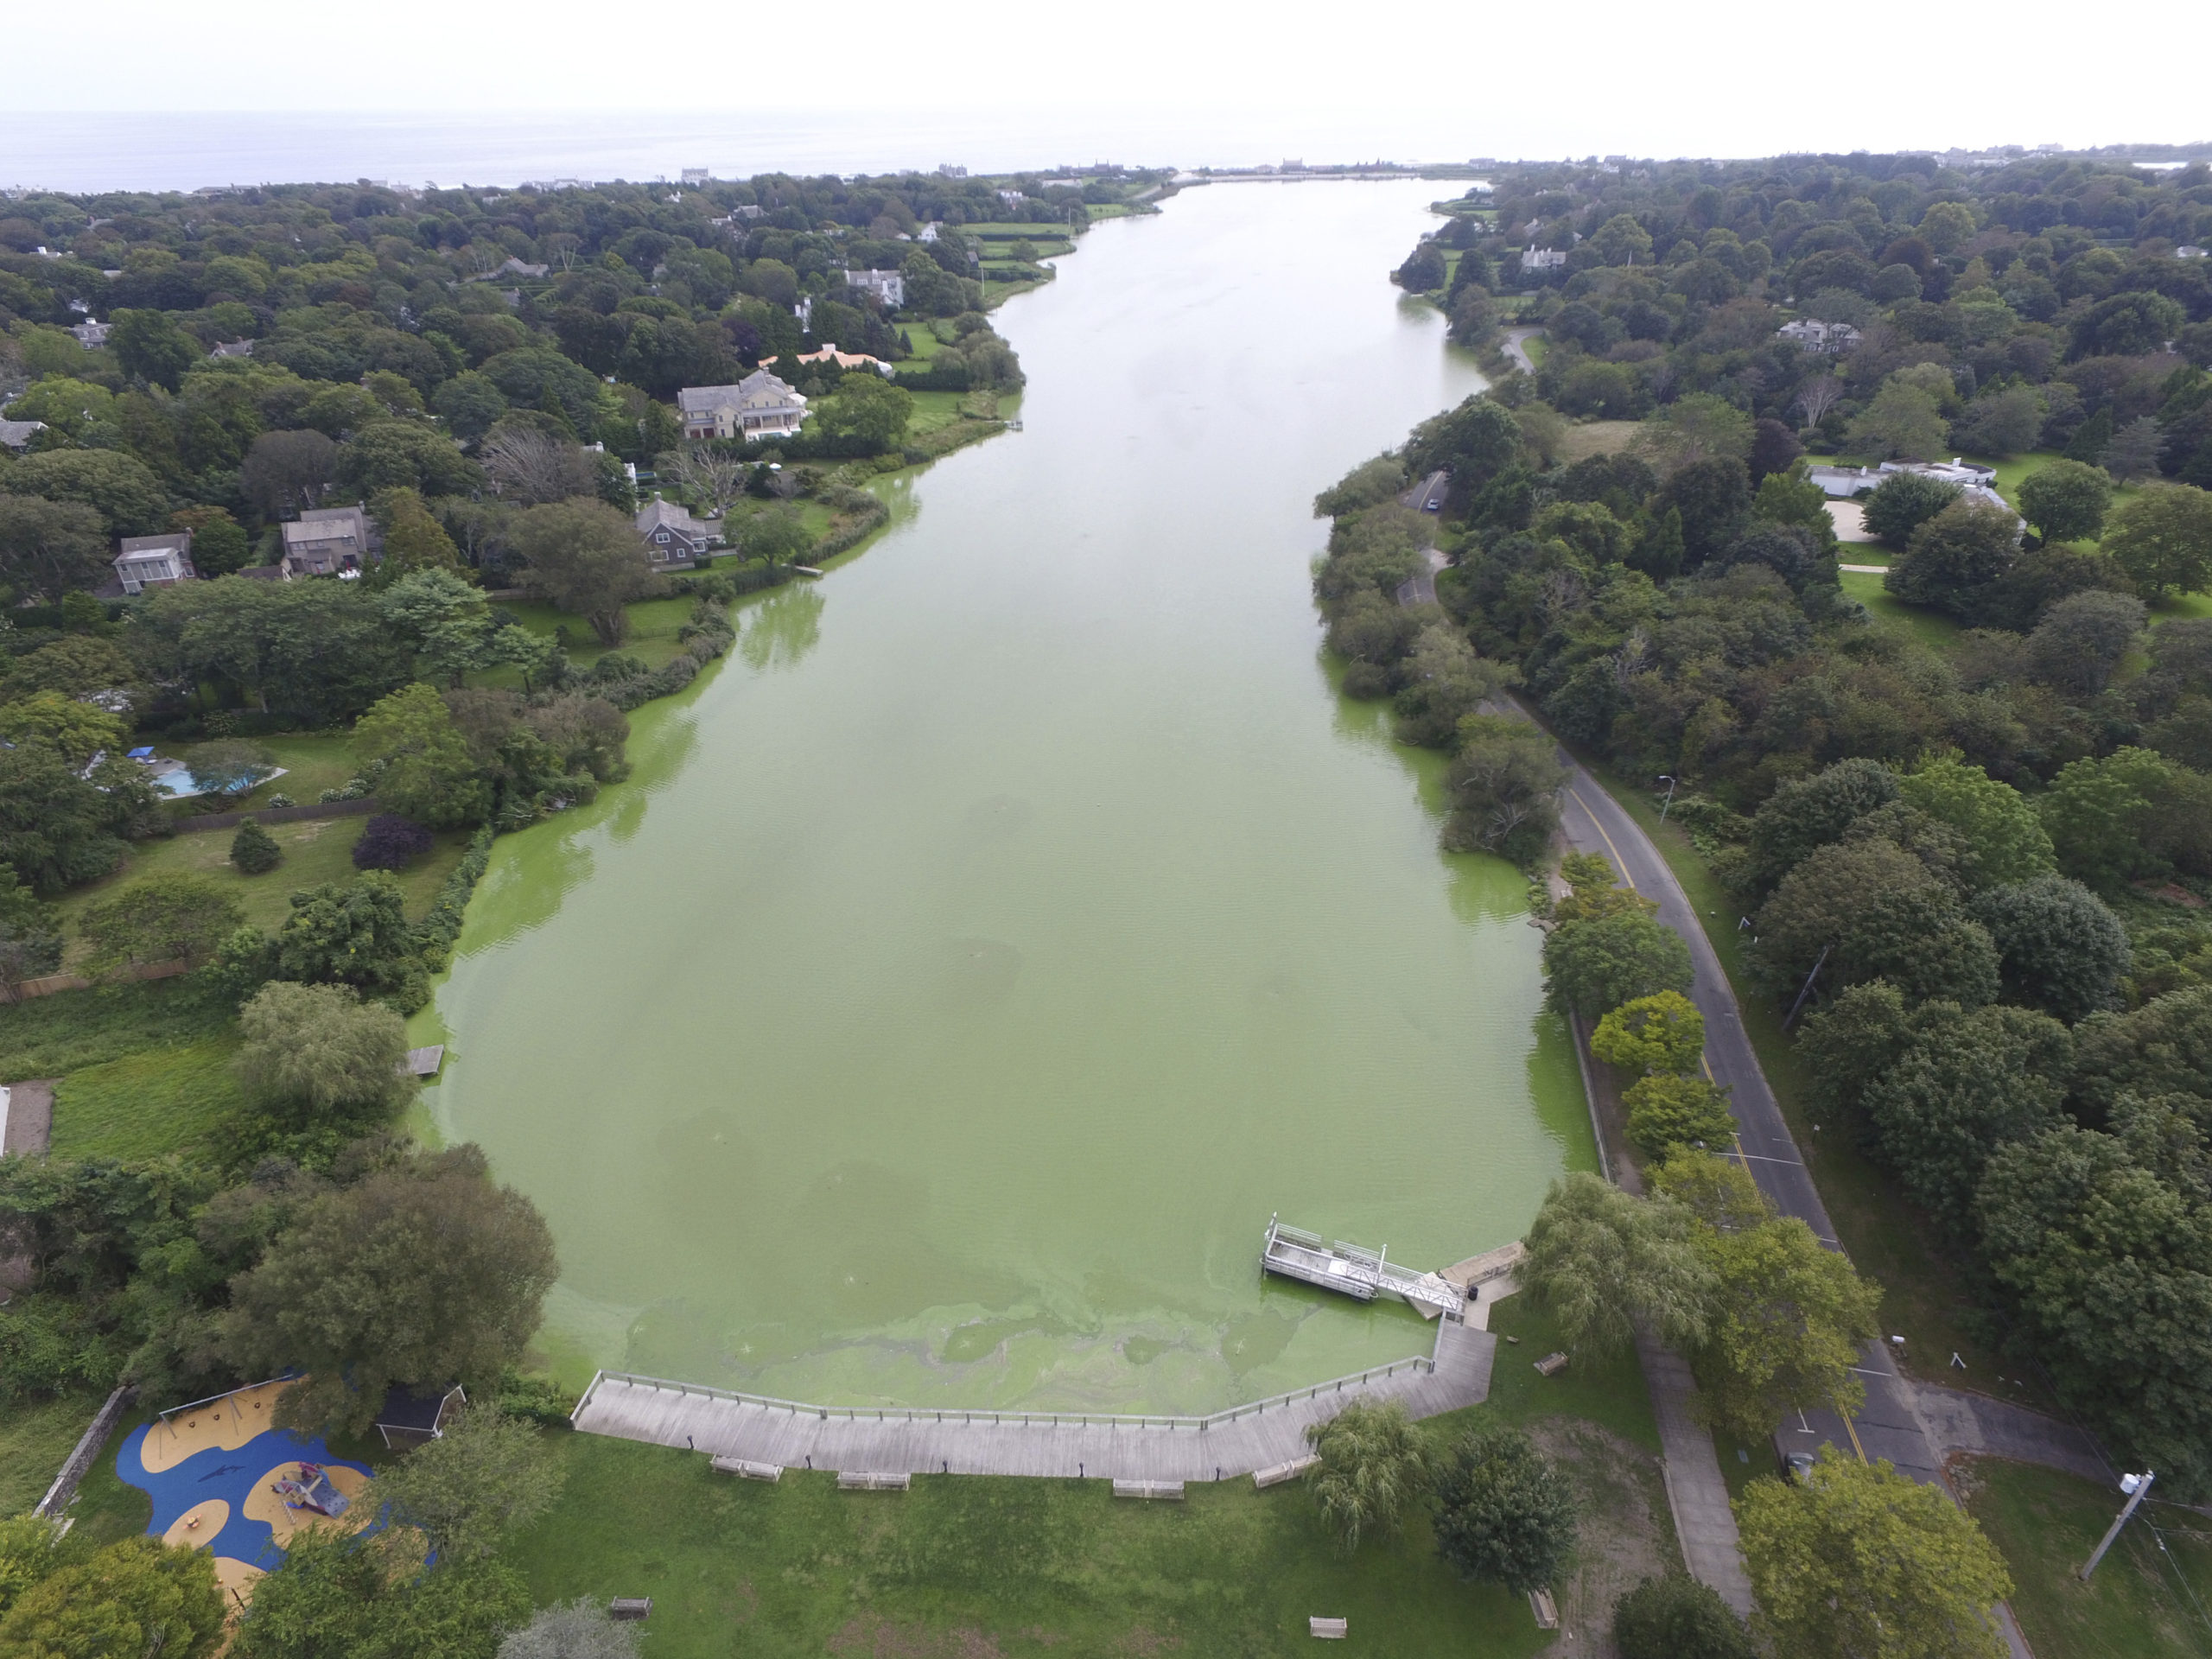 Lake Agawam in Southampton Village has suffered from chronic algae blooms, which are exacerbated by the heavy downpours that have defined the rainfall pattens in the Northeast in recent decades.